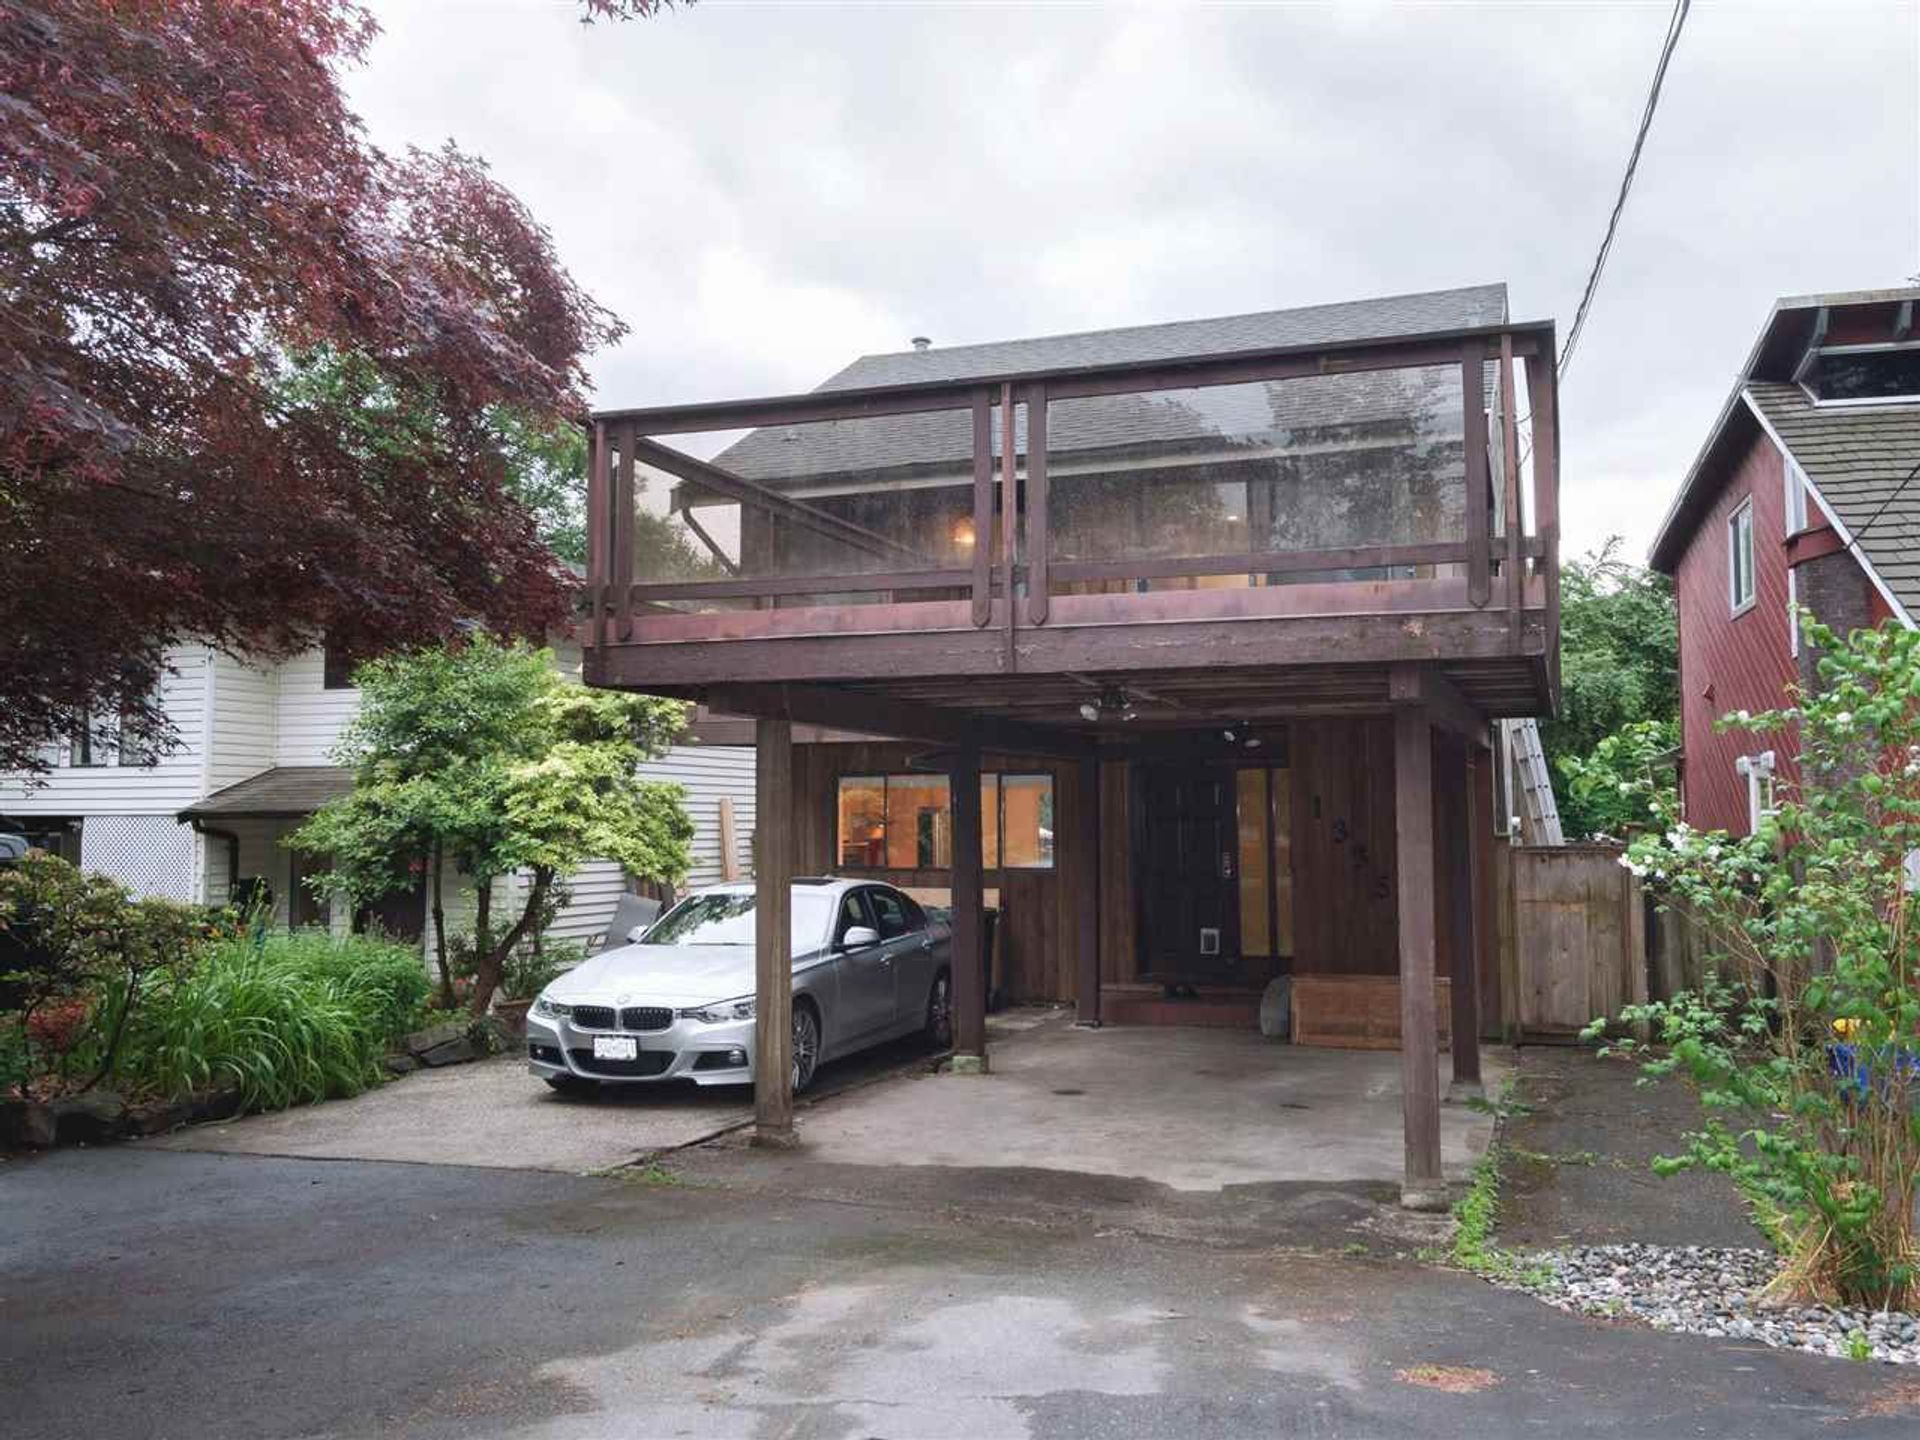 1335-e-8th-street-lynnmour-north-vancouver-03 at 1335 E 8th Street, Lynnmour, North Vancouver